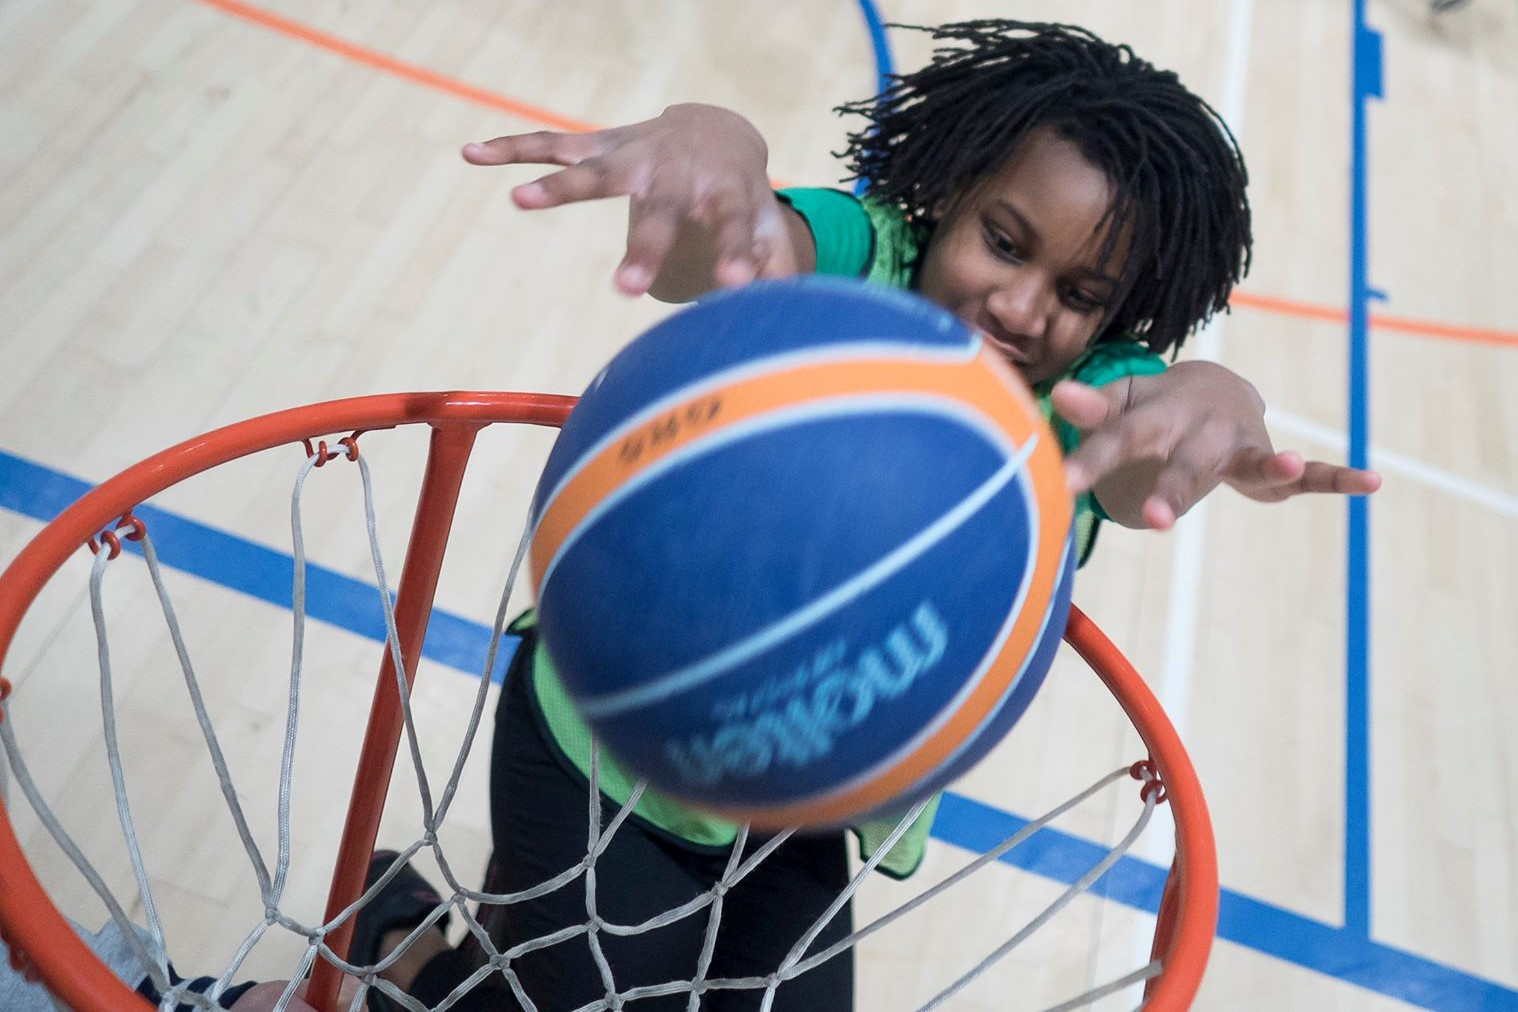 PRIMARY SCHOOL CAMP - Fun sessions for children who want to enjoy and improve their basketball.9:00am - 1:00pm every school holiday (including in-service days)Book single or multiple daysAge Group: P1 - P7